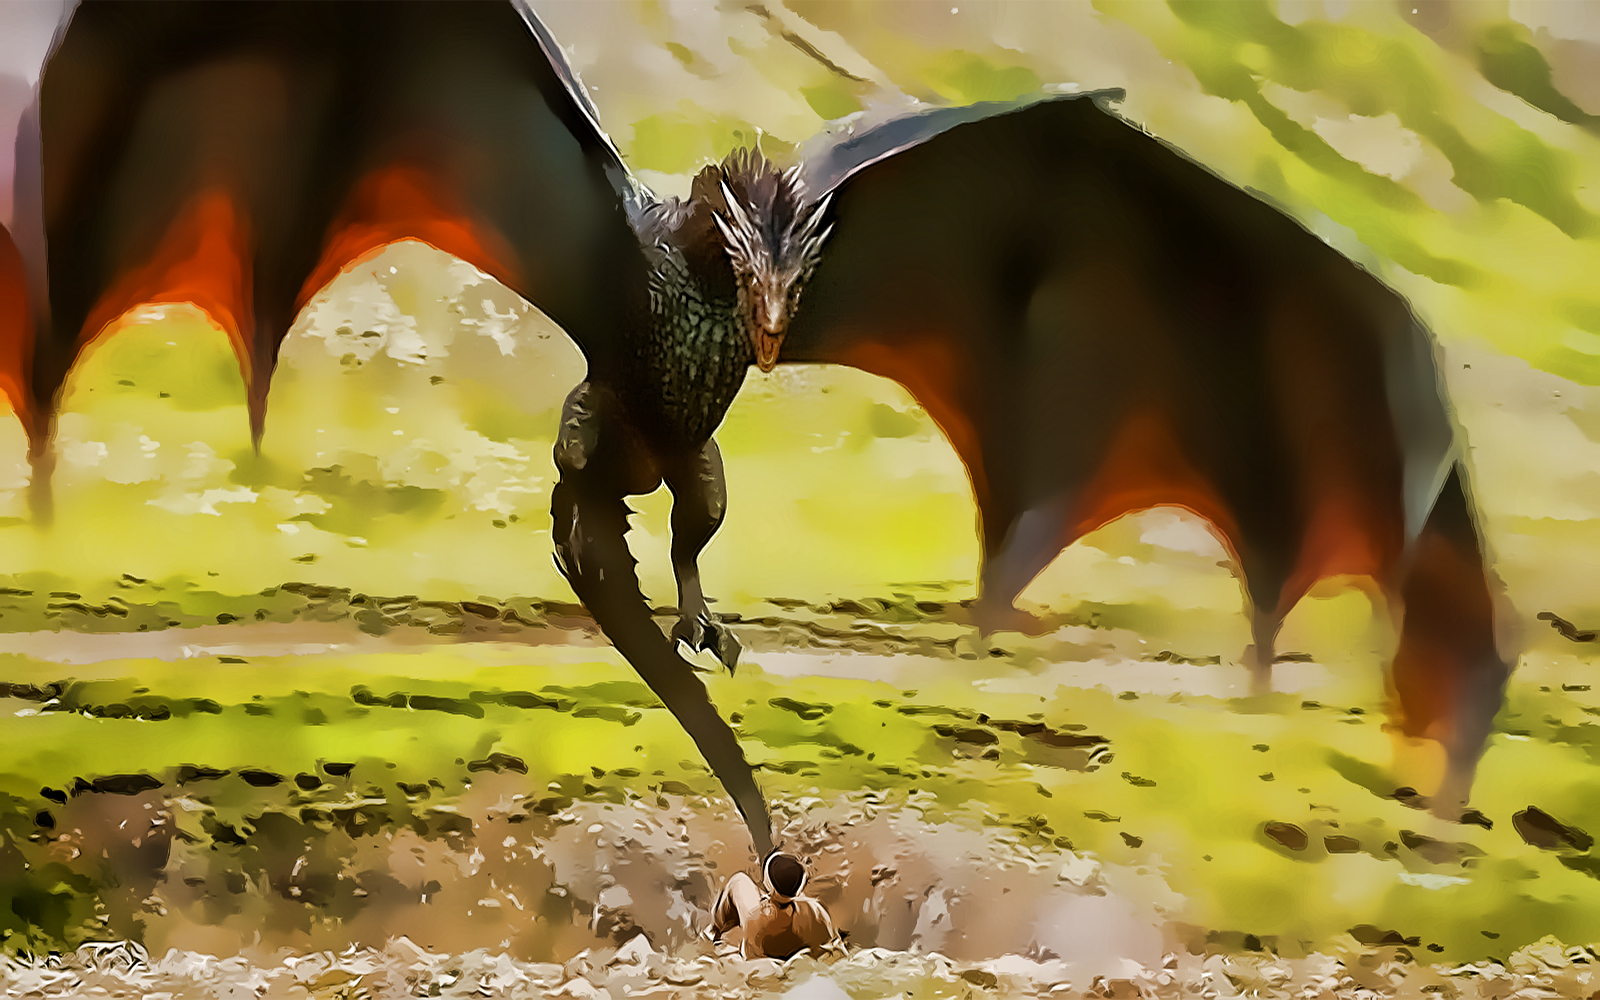 the red dragon from game of thrones drogon   fan art 1600x1000